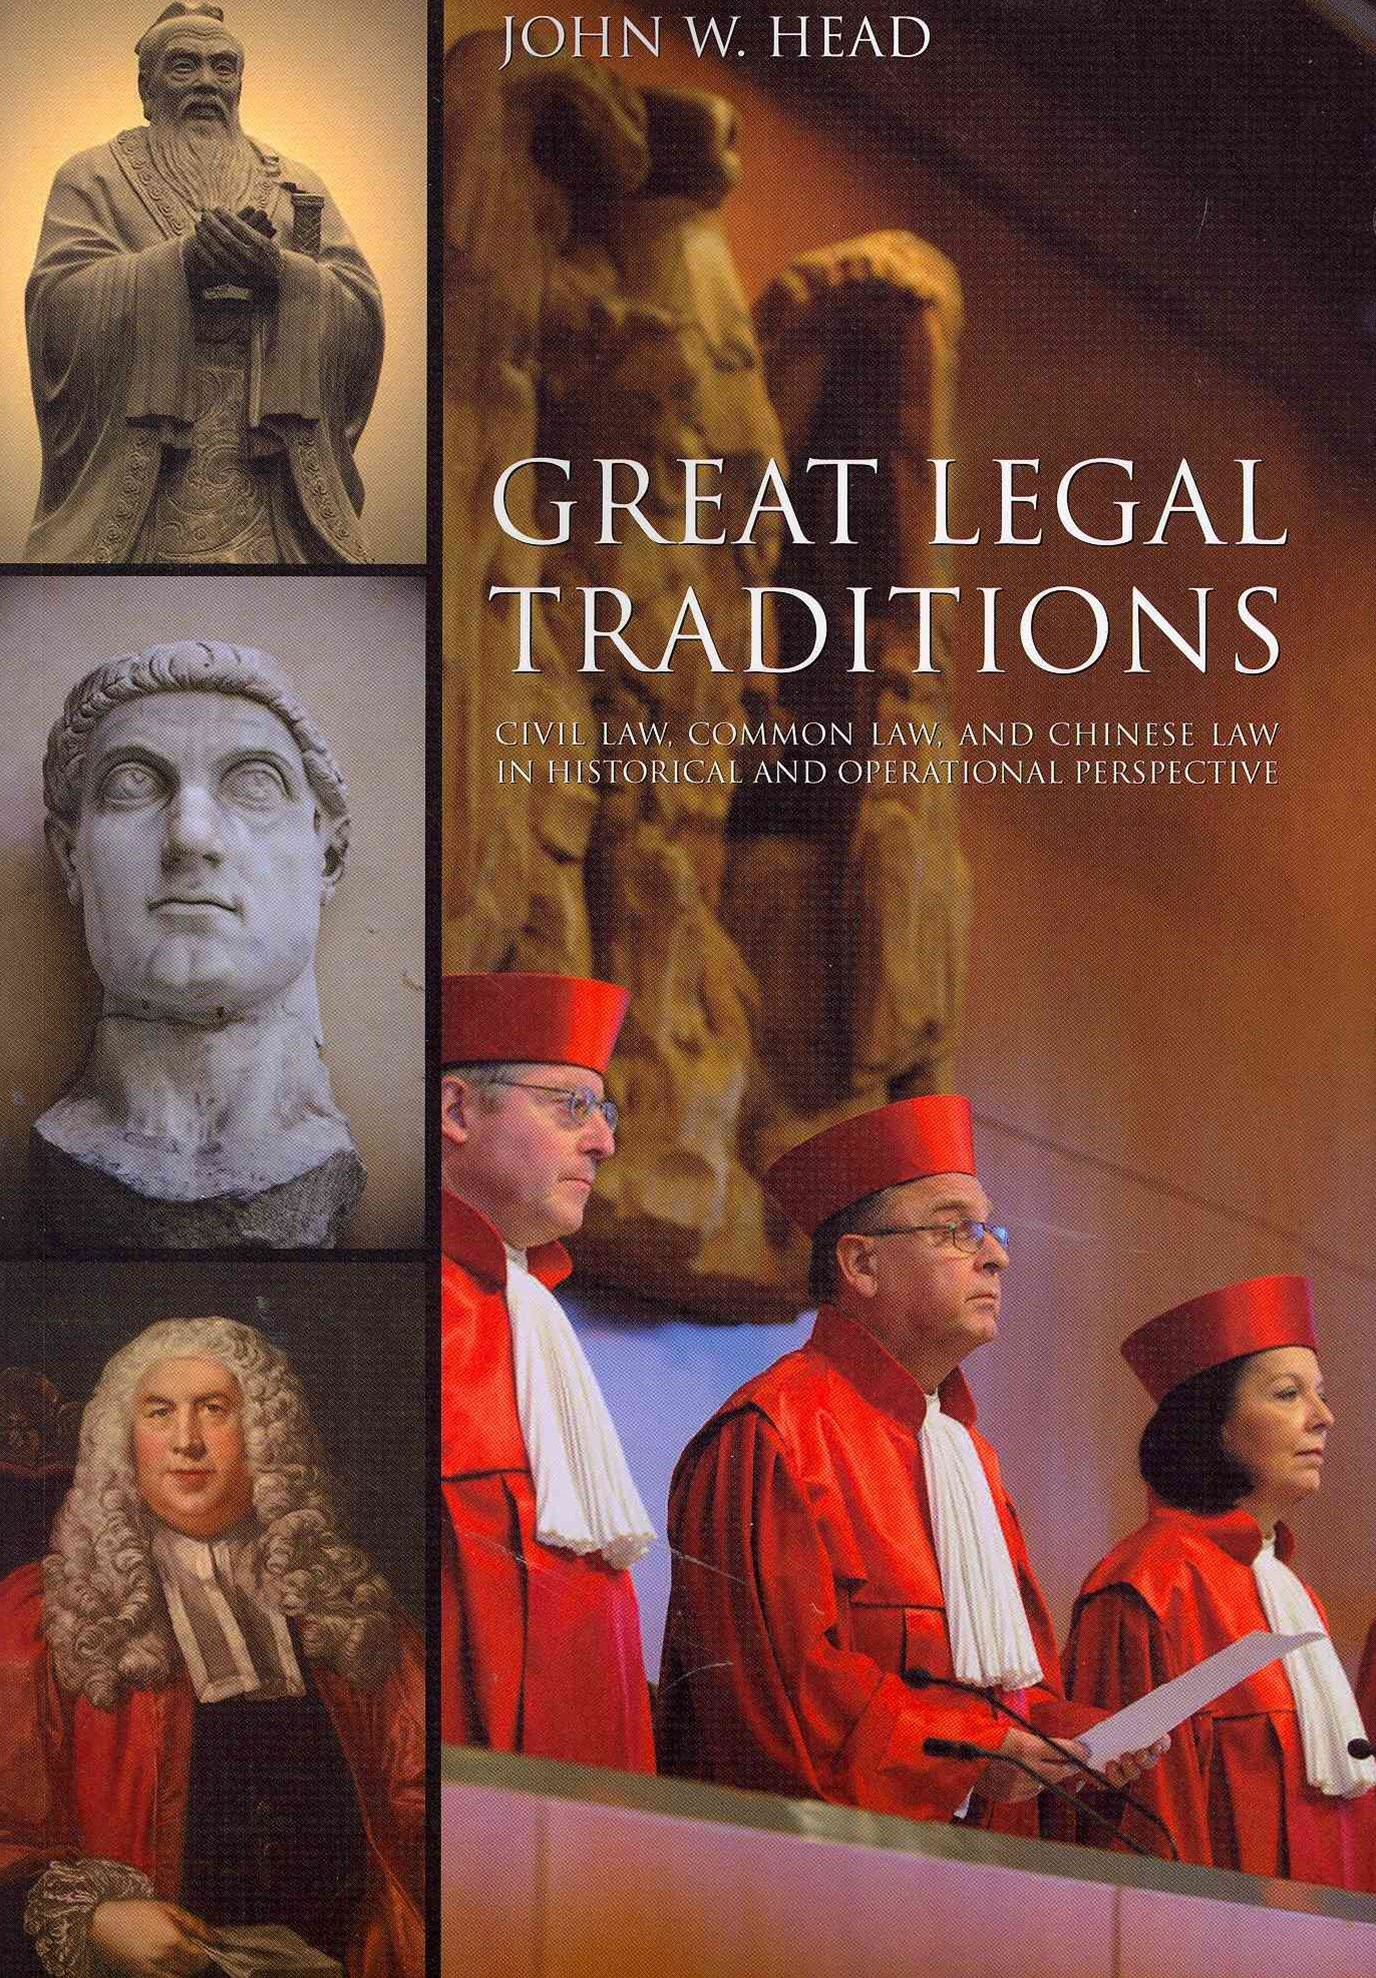 Great Legal Traditions